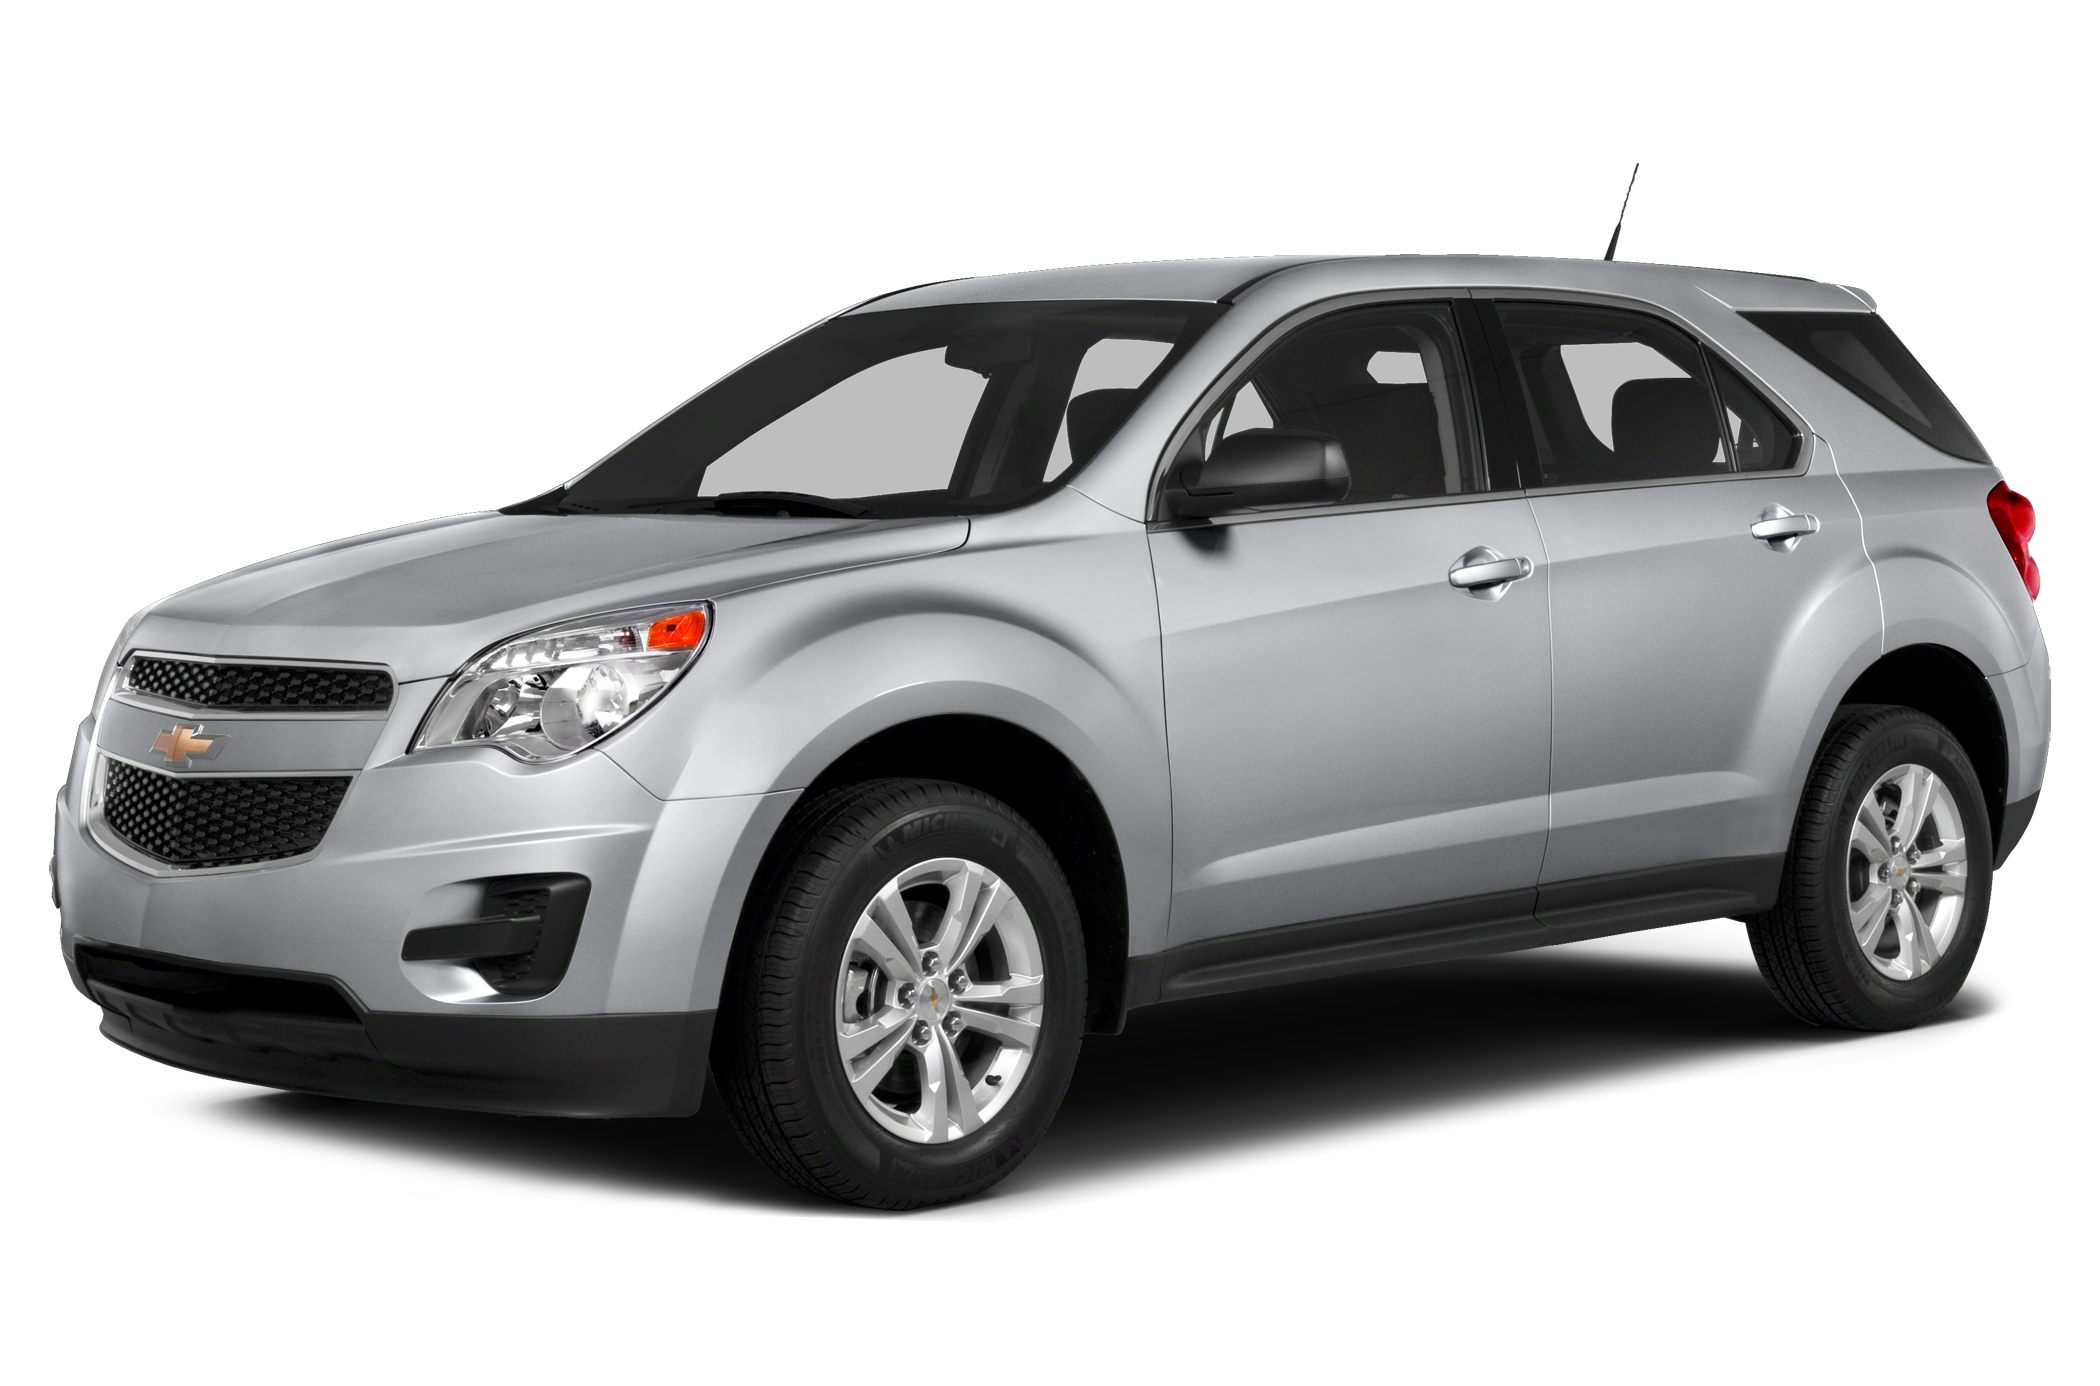 2015 Chevrolet Equinox LS SUV for sale in Superior for $27,145 with 0 miles